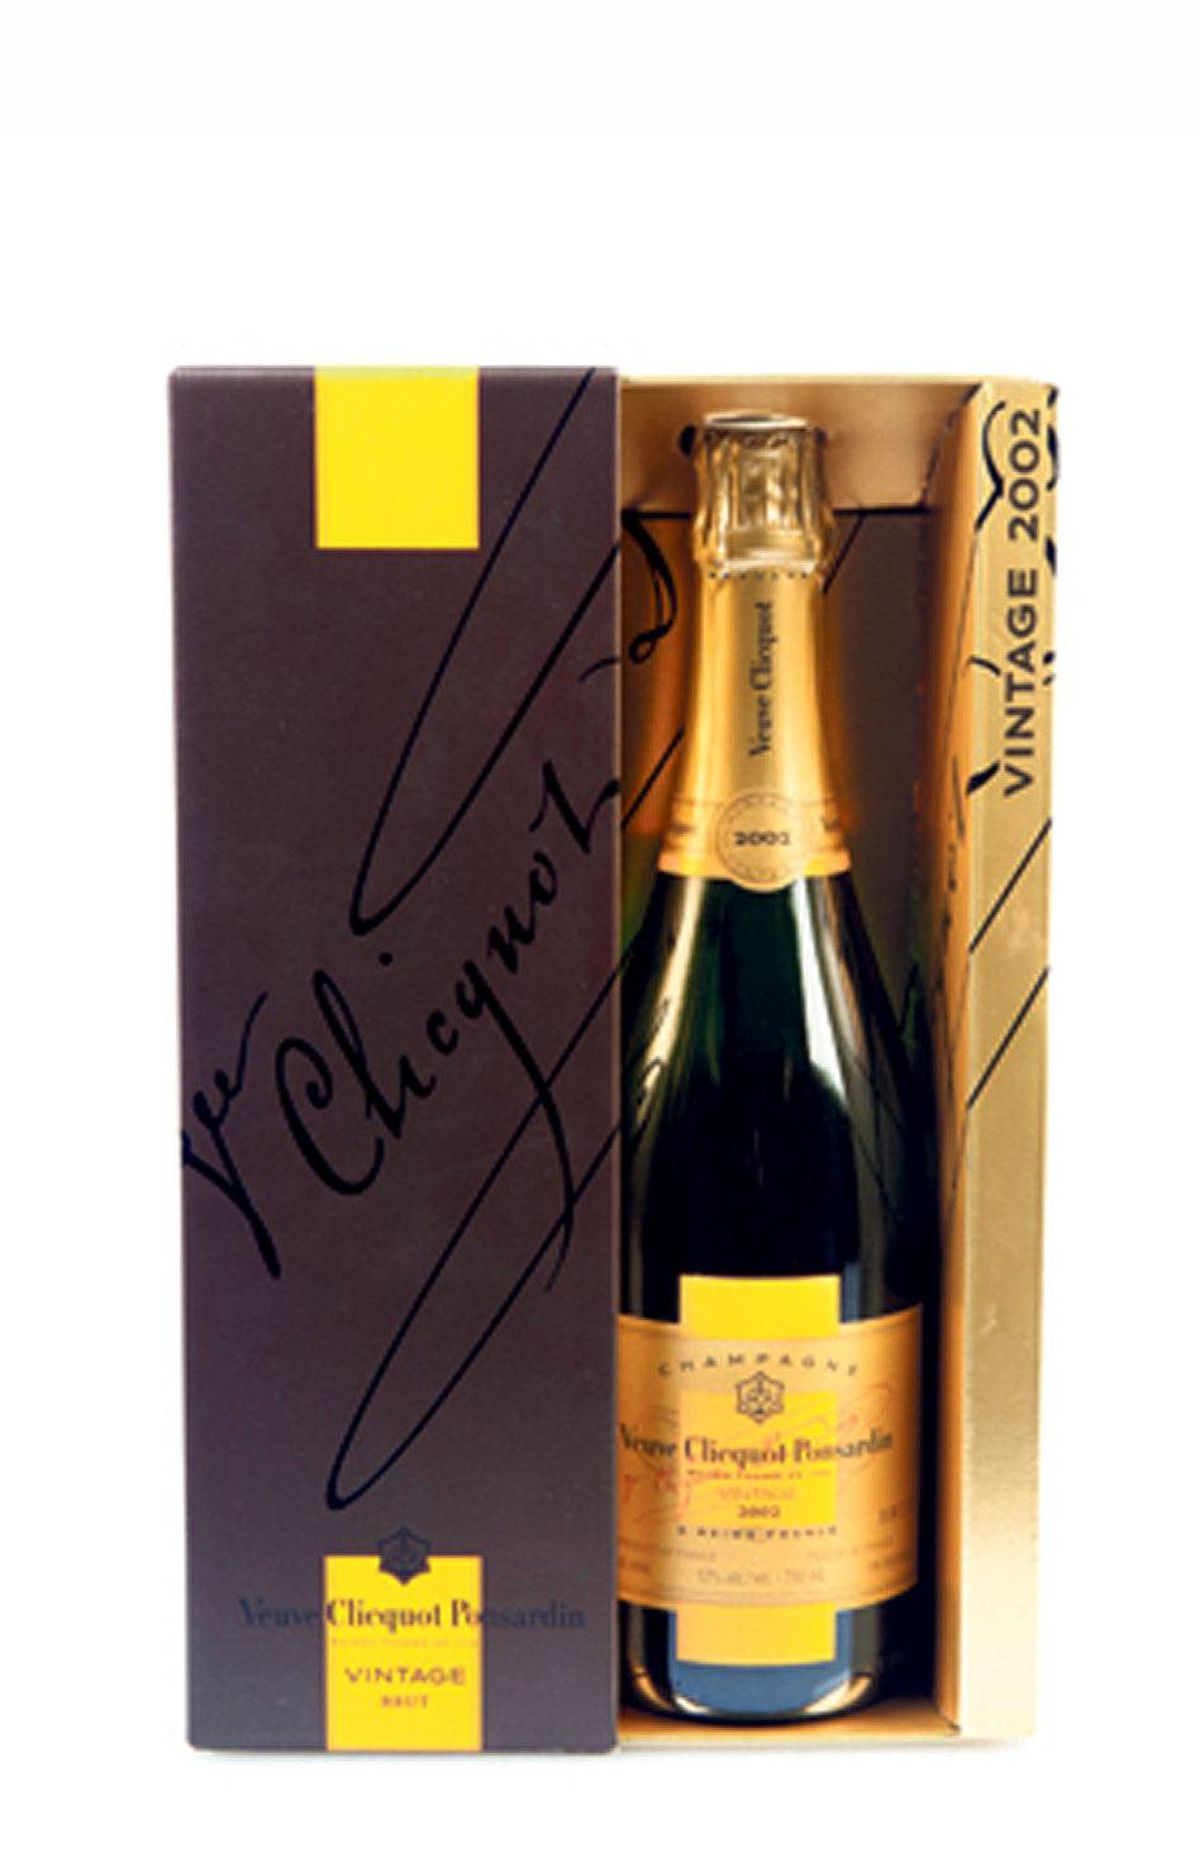 Vintage 2002 Veuve Clicquot Ponsardin Champagne, $90 at wine and liquor stores across Canada.